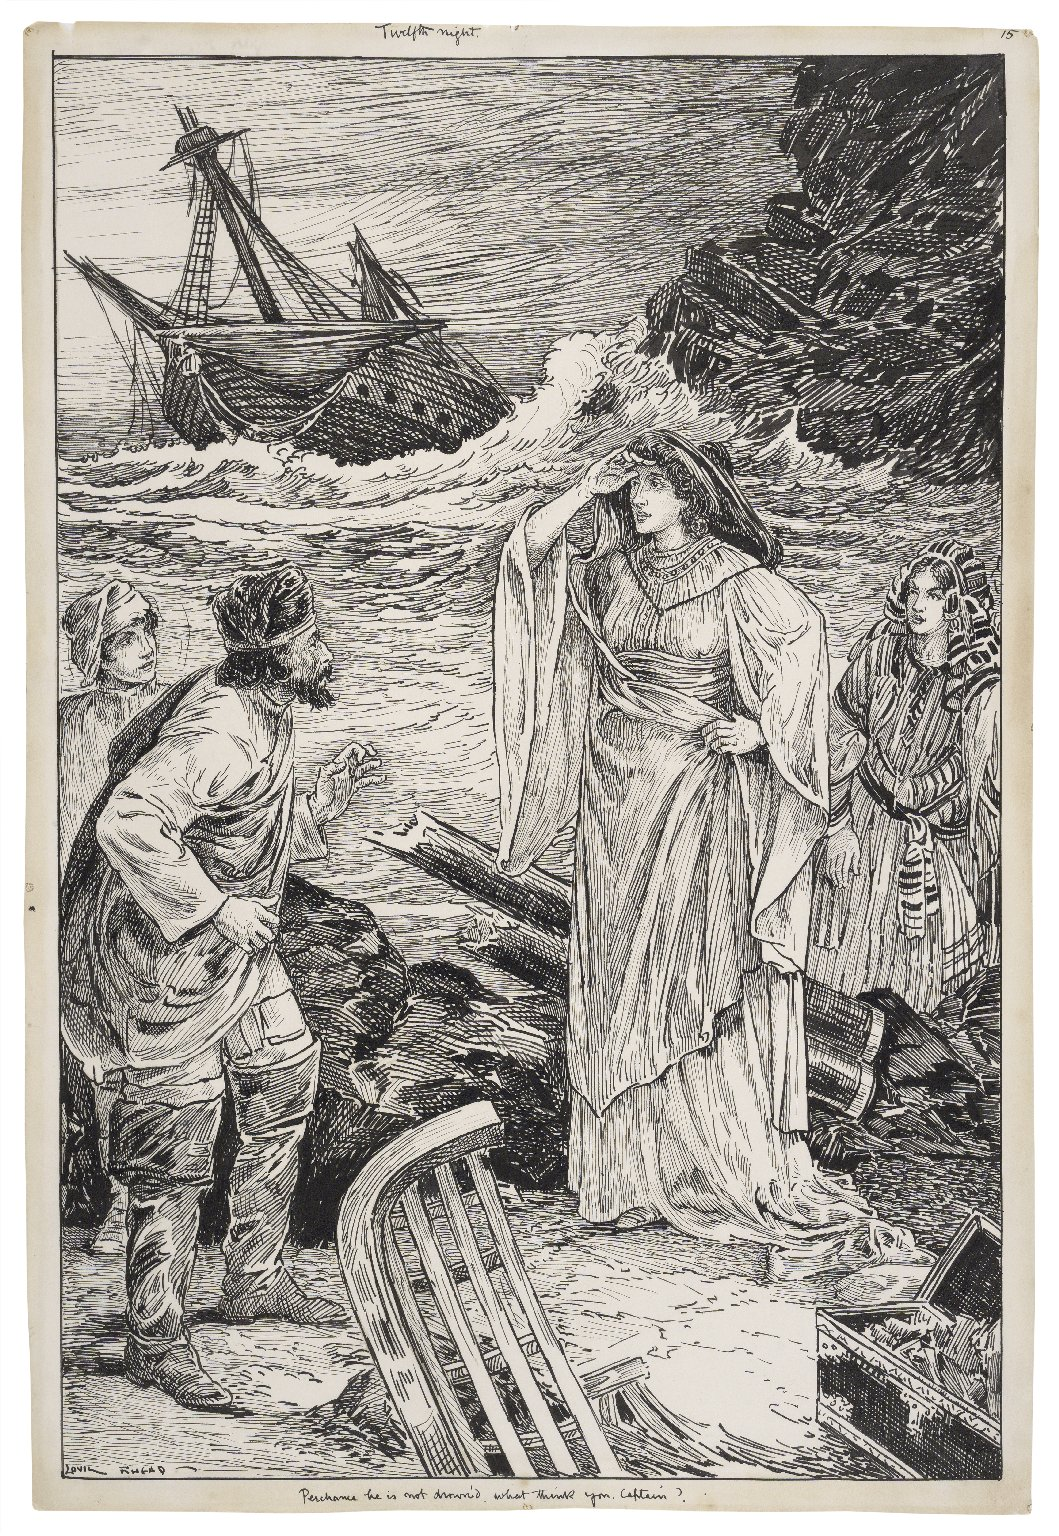 Twelfth night. Perchance he is not drown'd, what think you, Captain? [graphic] / Louis Rhead.